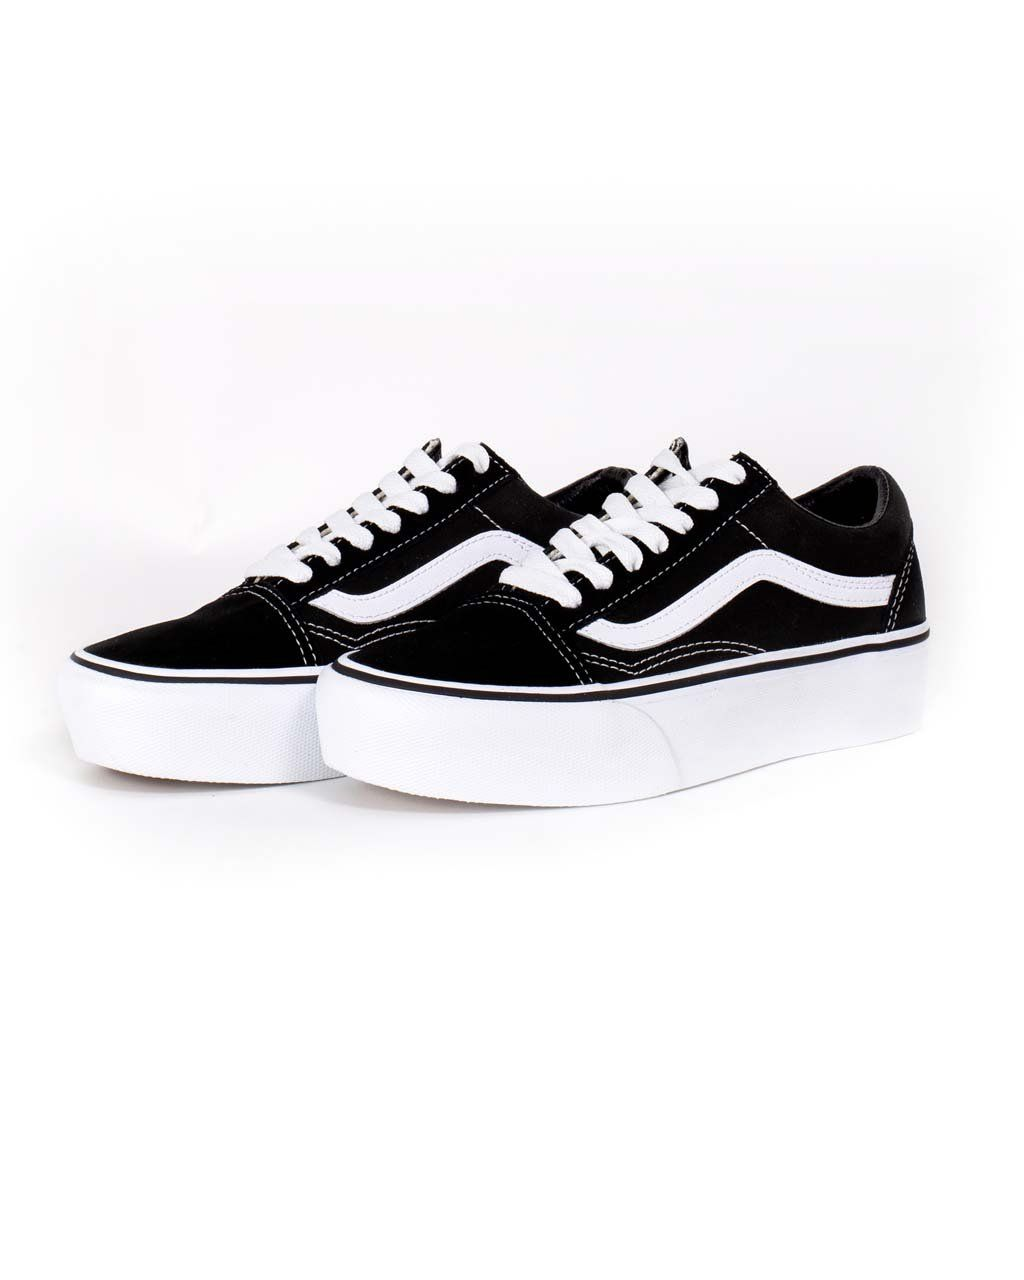 7787dc6913e old skool platform - black by vans - shoes - ban.do